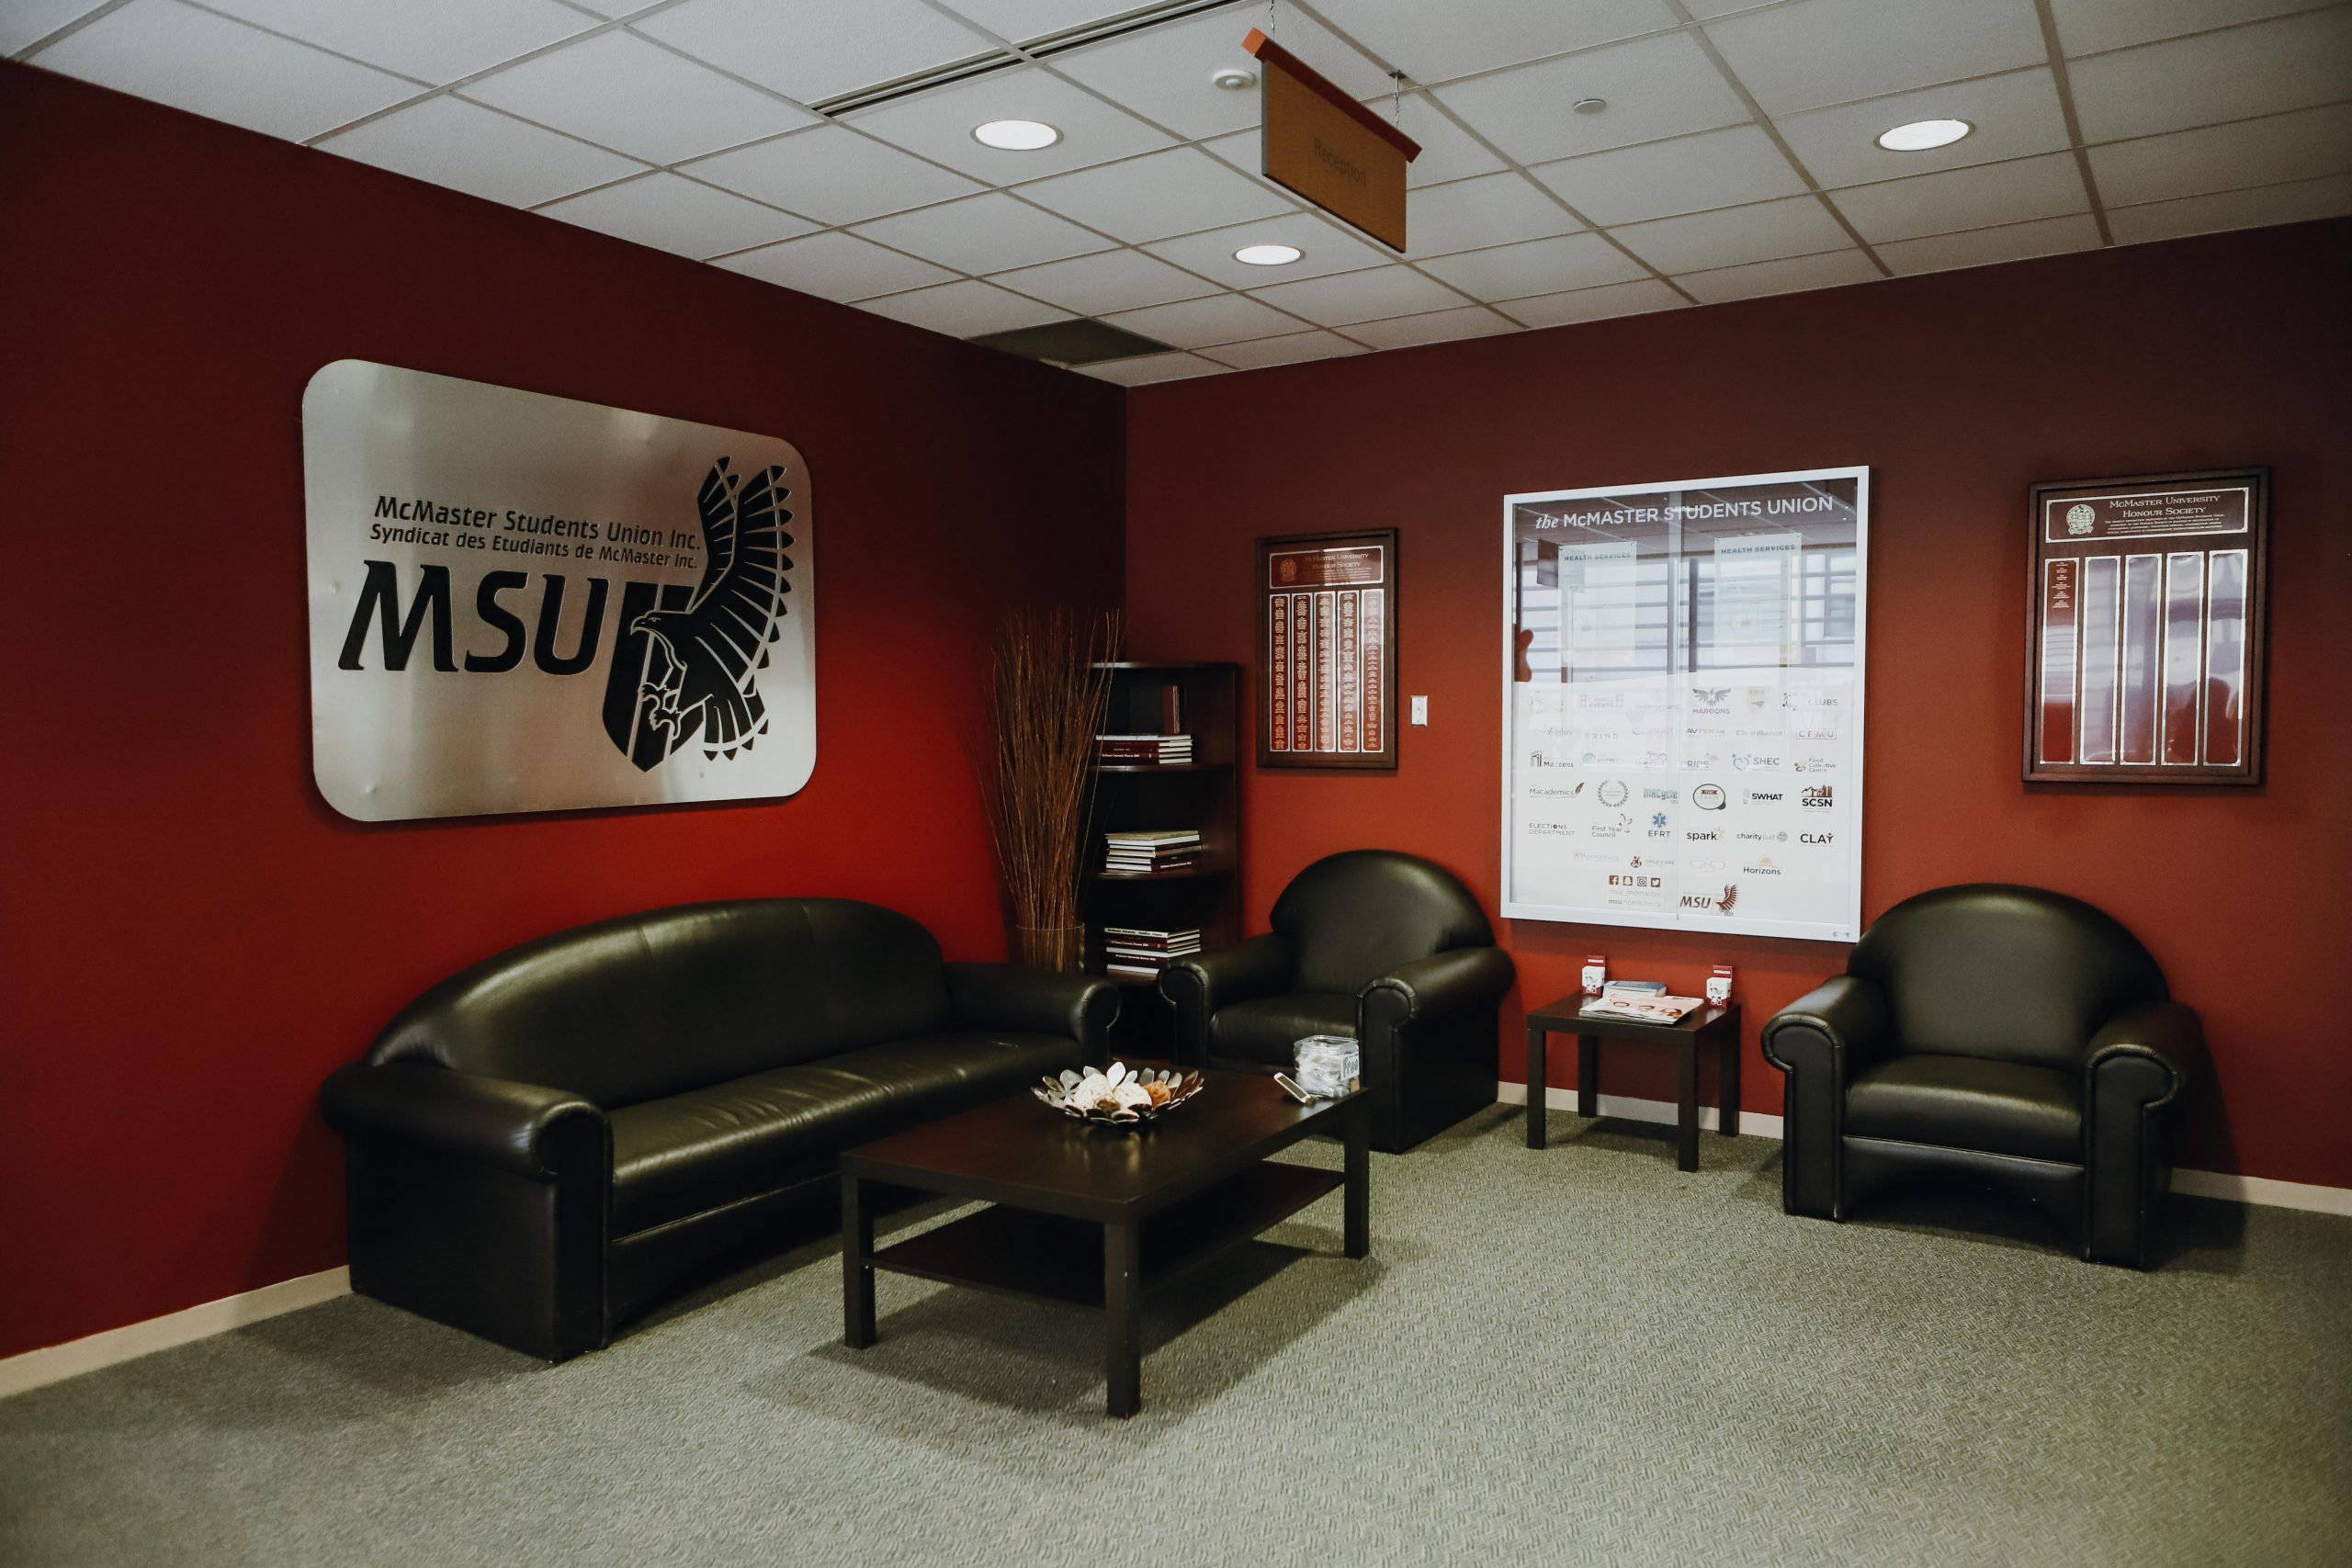 A picture of the MSU office with the MSU logo at the front. Underneath there is a black couch.